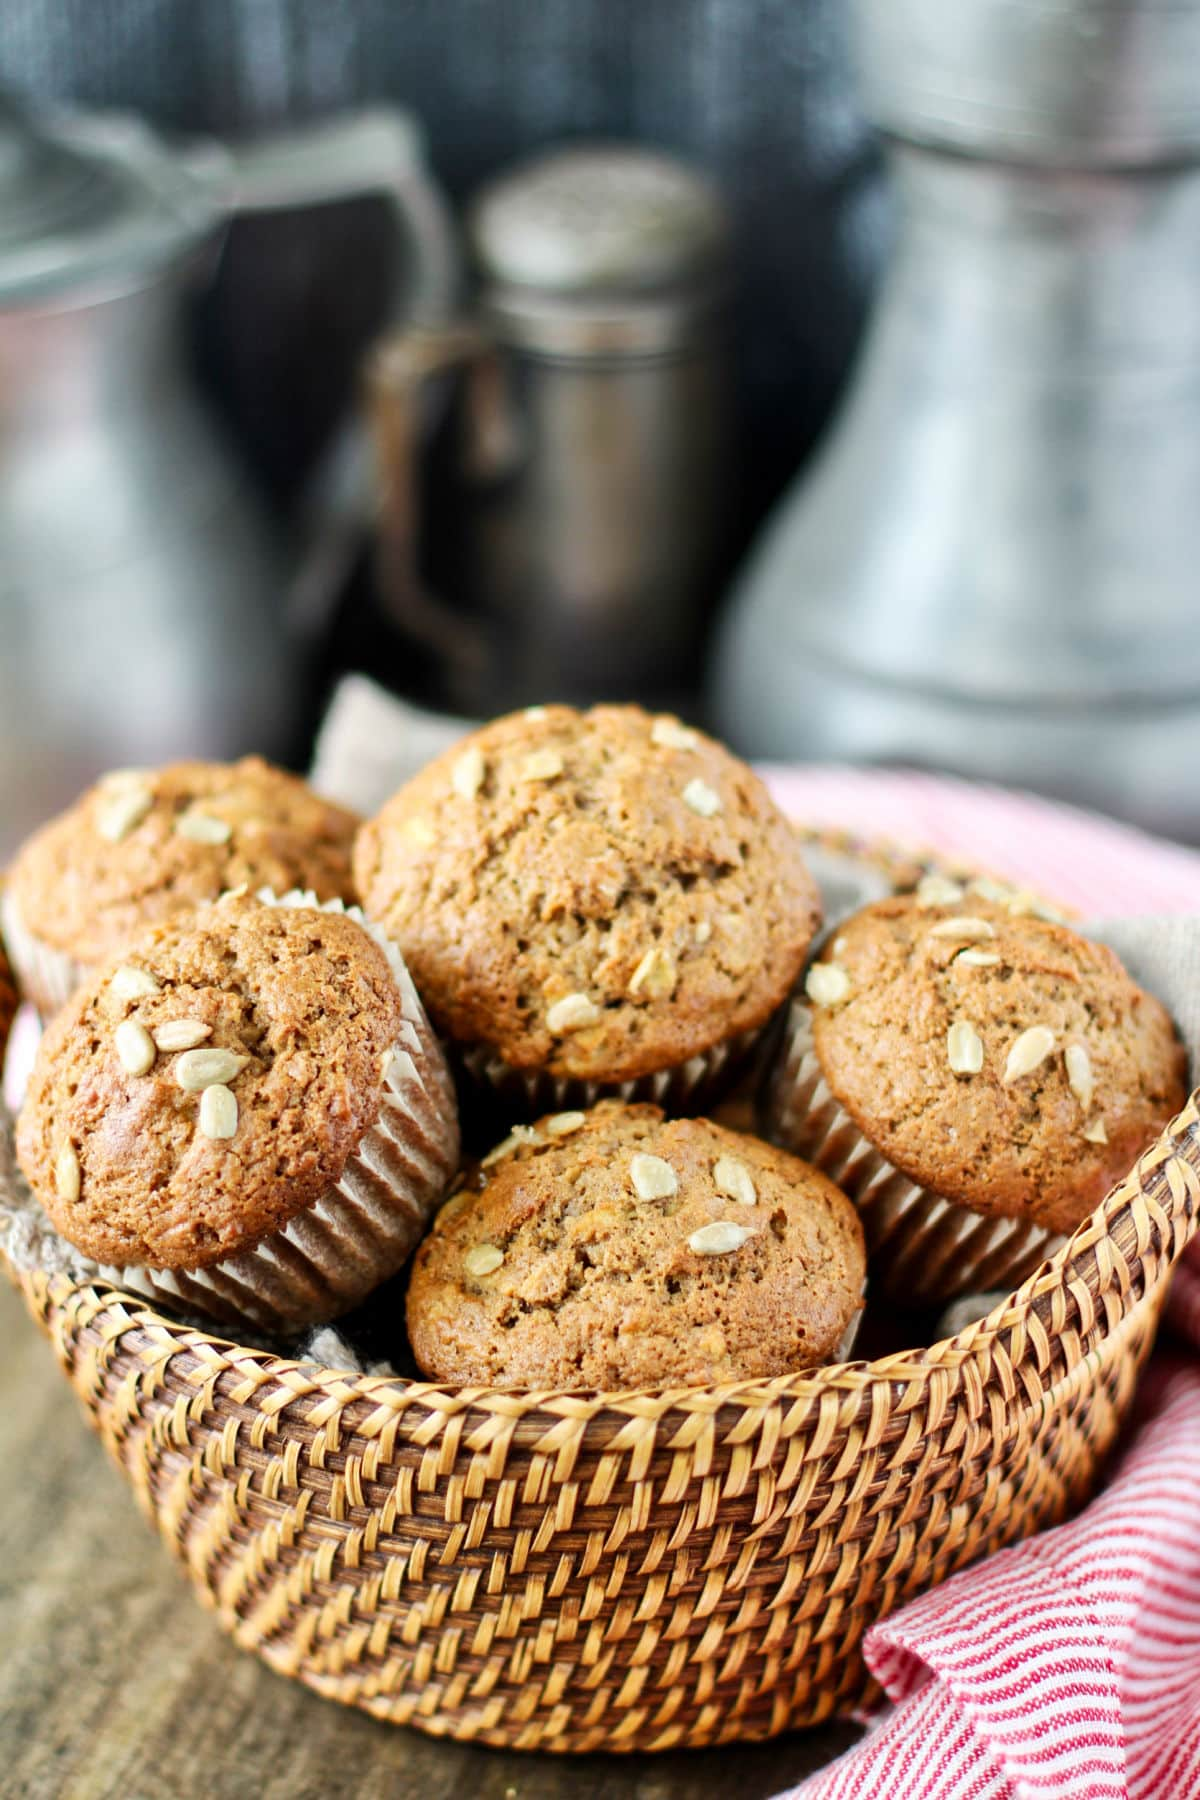 Whole Wheat and Sunflower Seed Muffins in a basket.